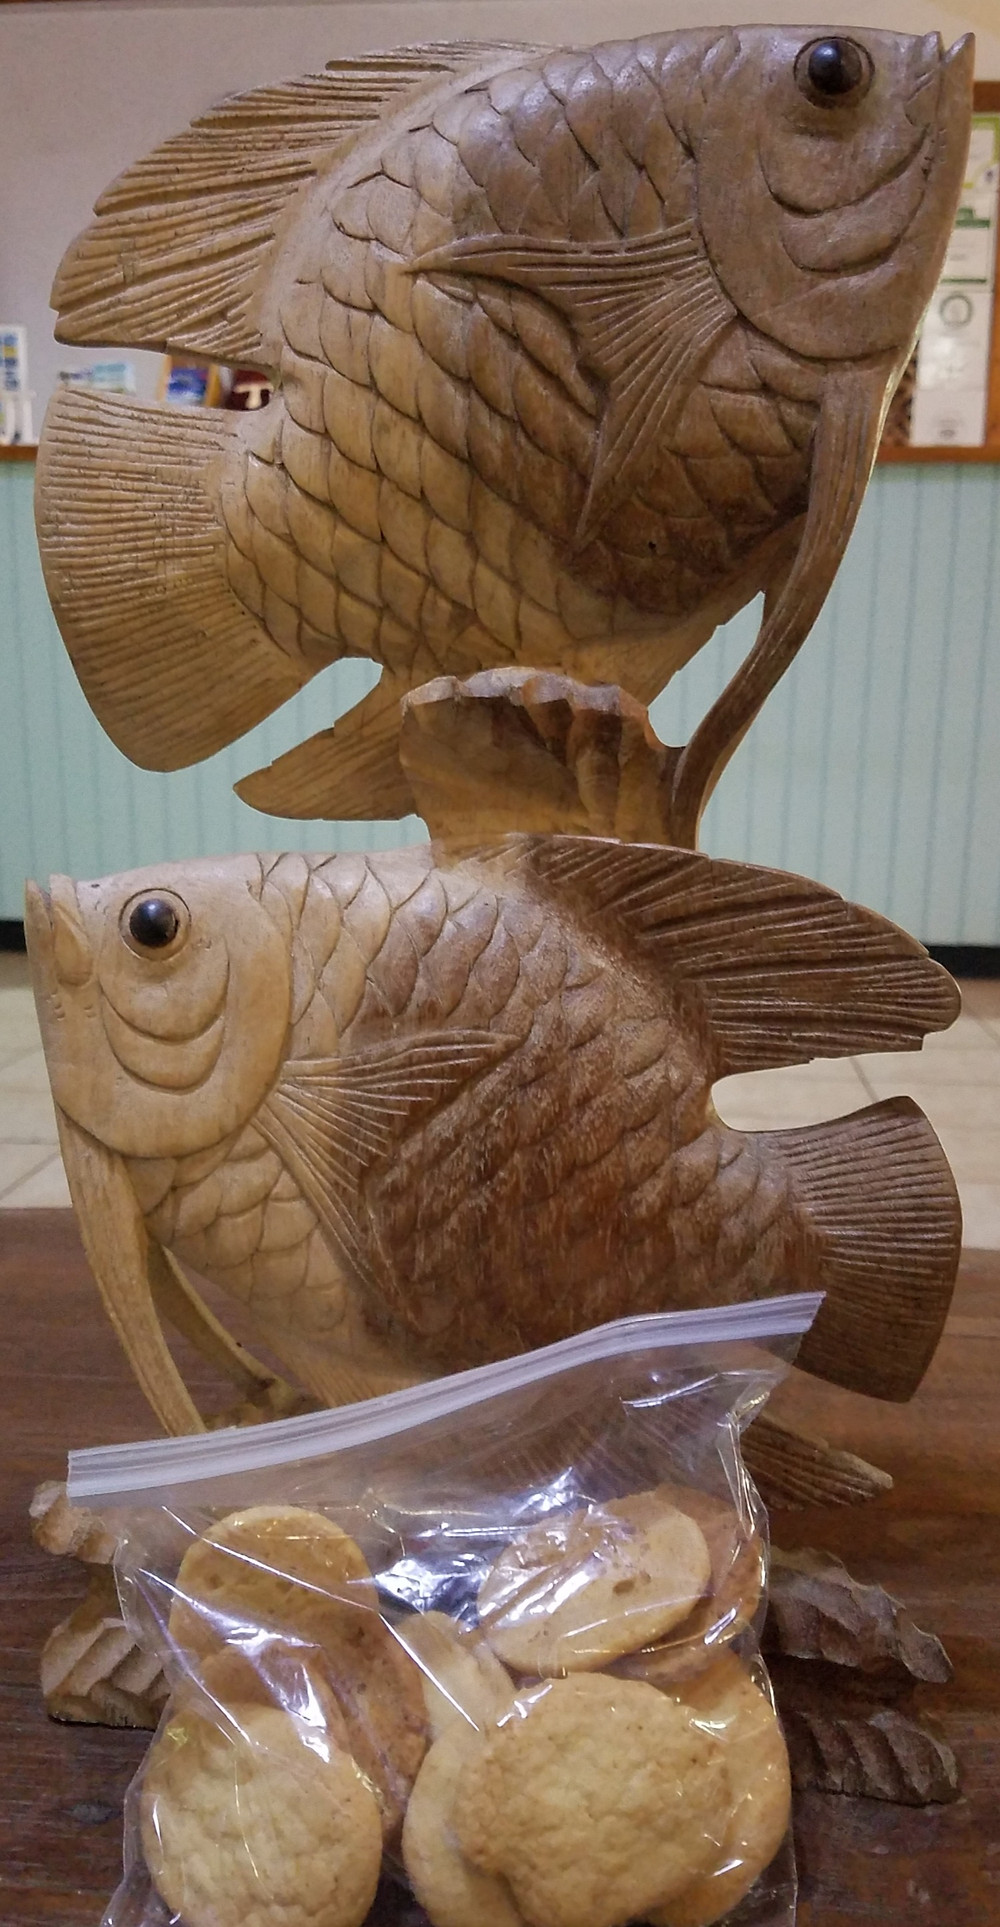 photo of wooden fish carving and bag of coconut cookies